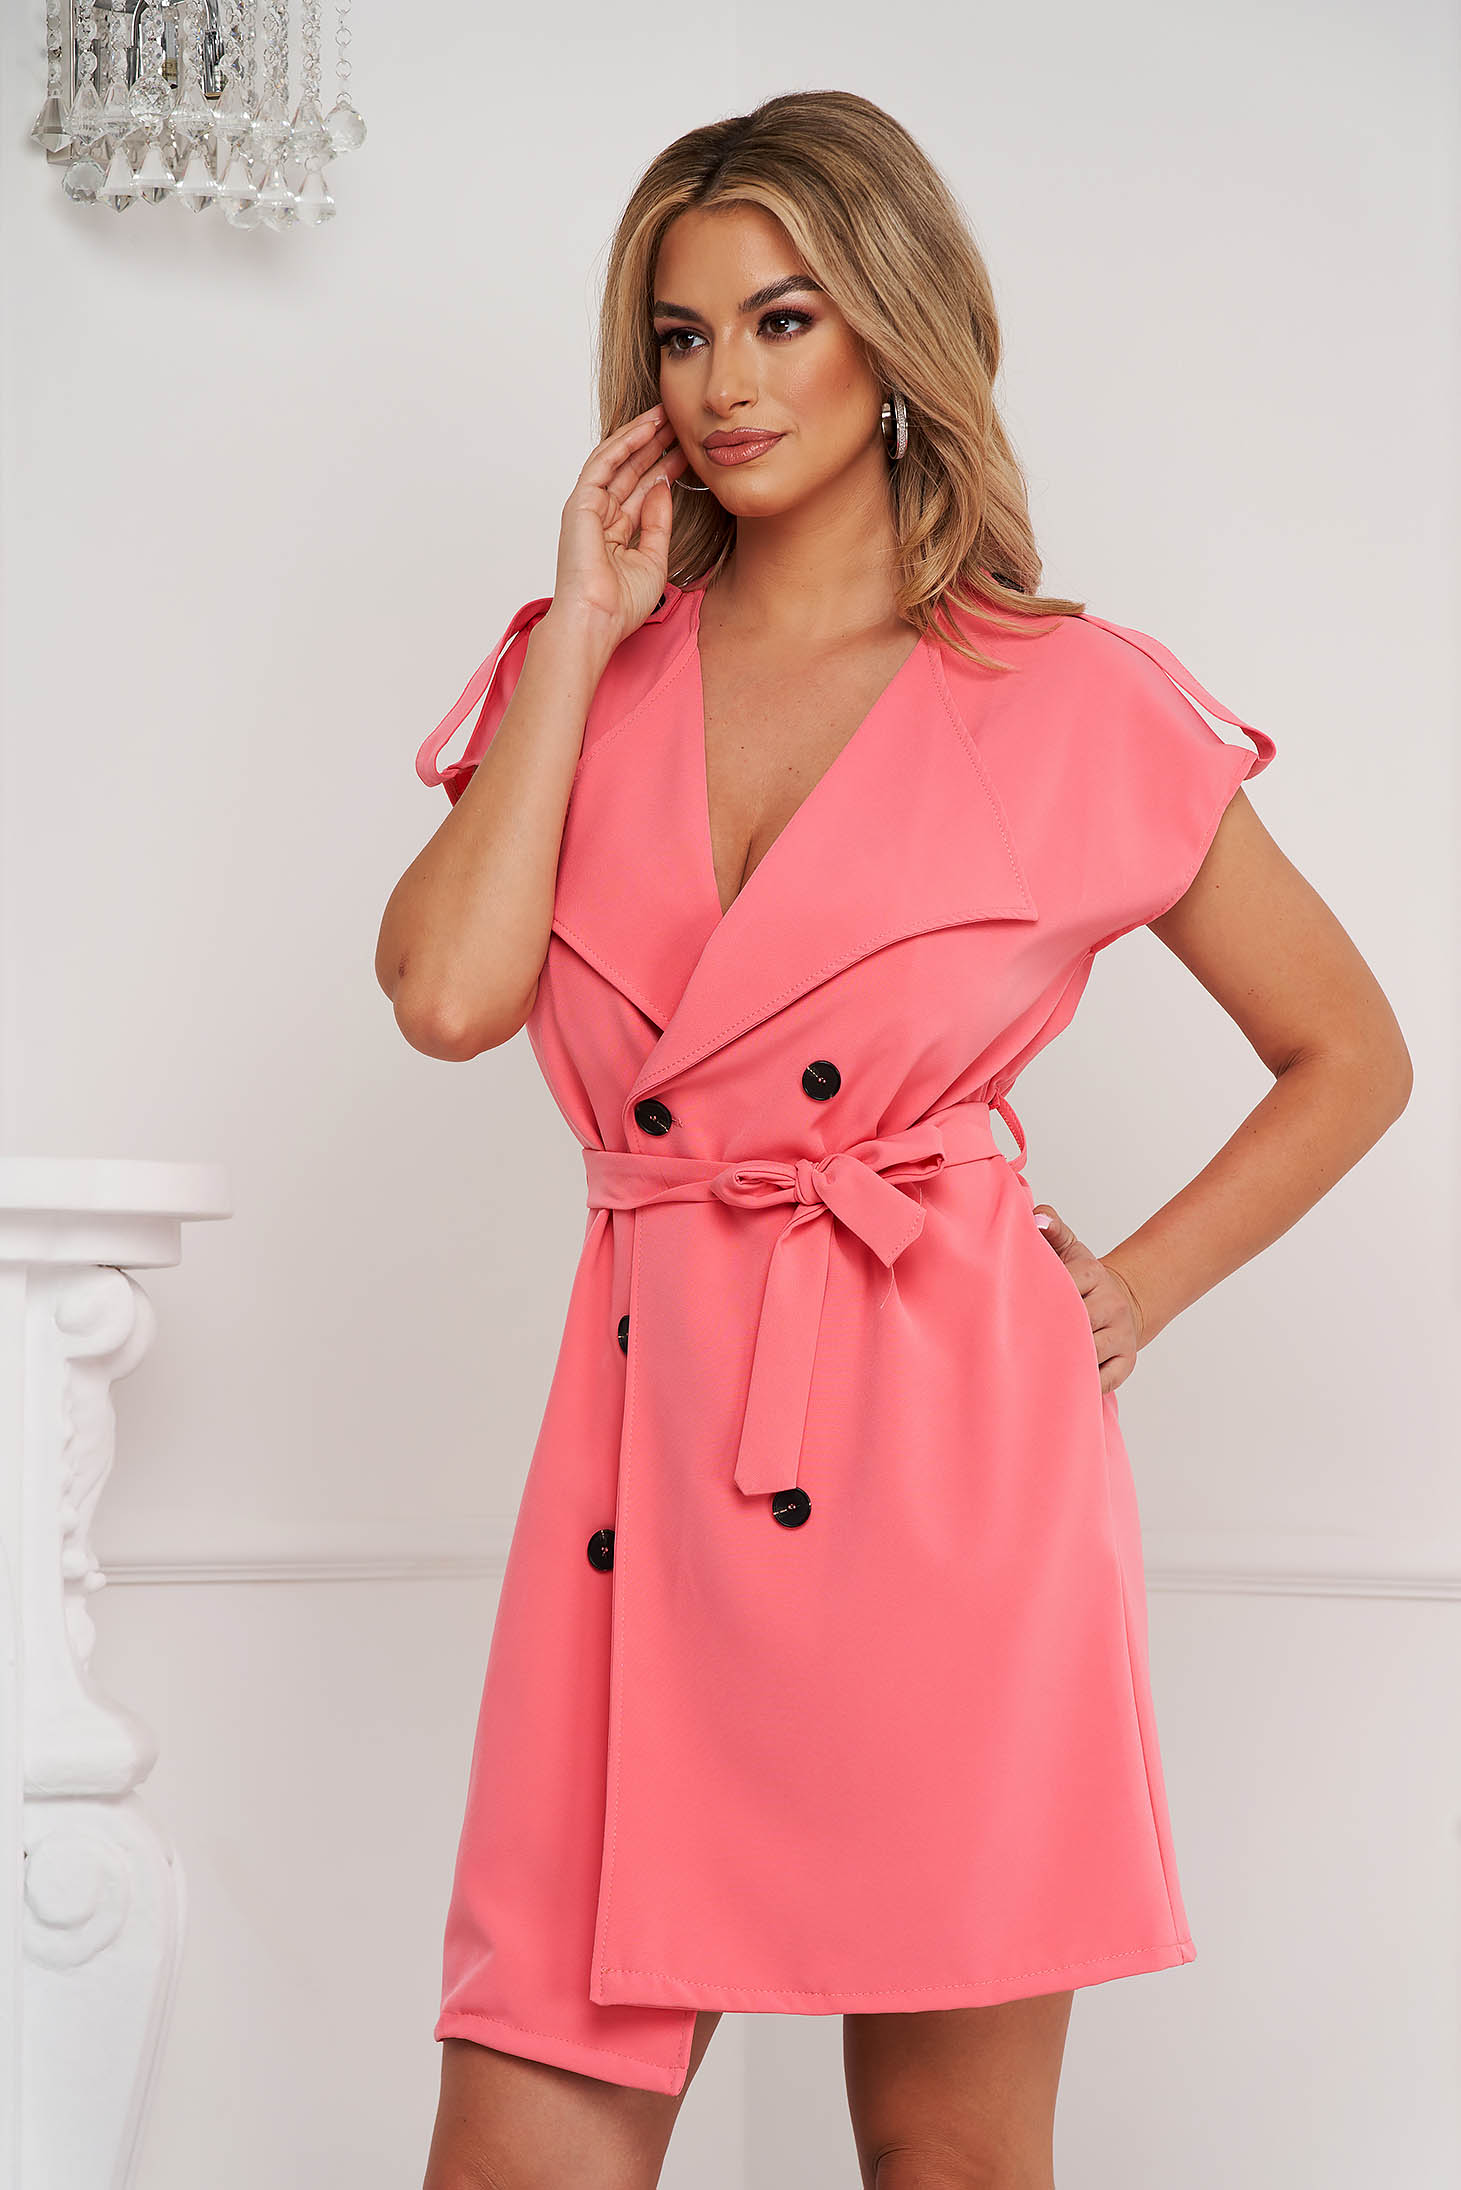 Pink gilet accessorized with tied waistband slightly elastic fabric with pockets